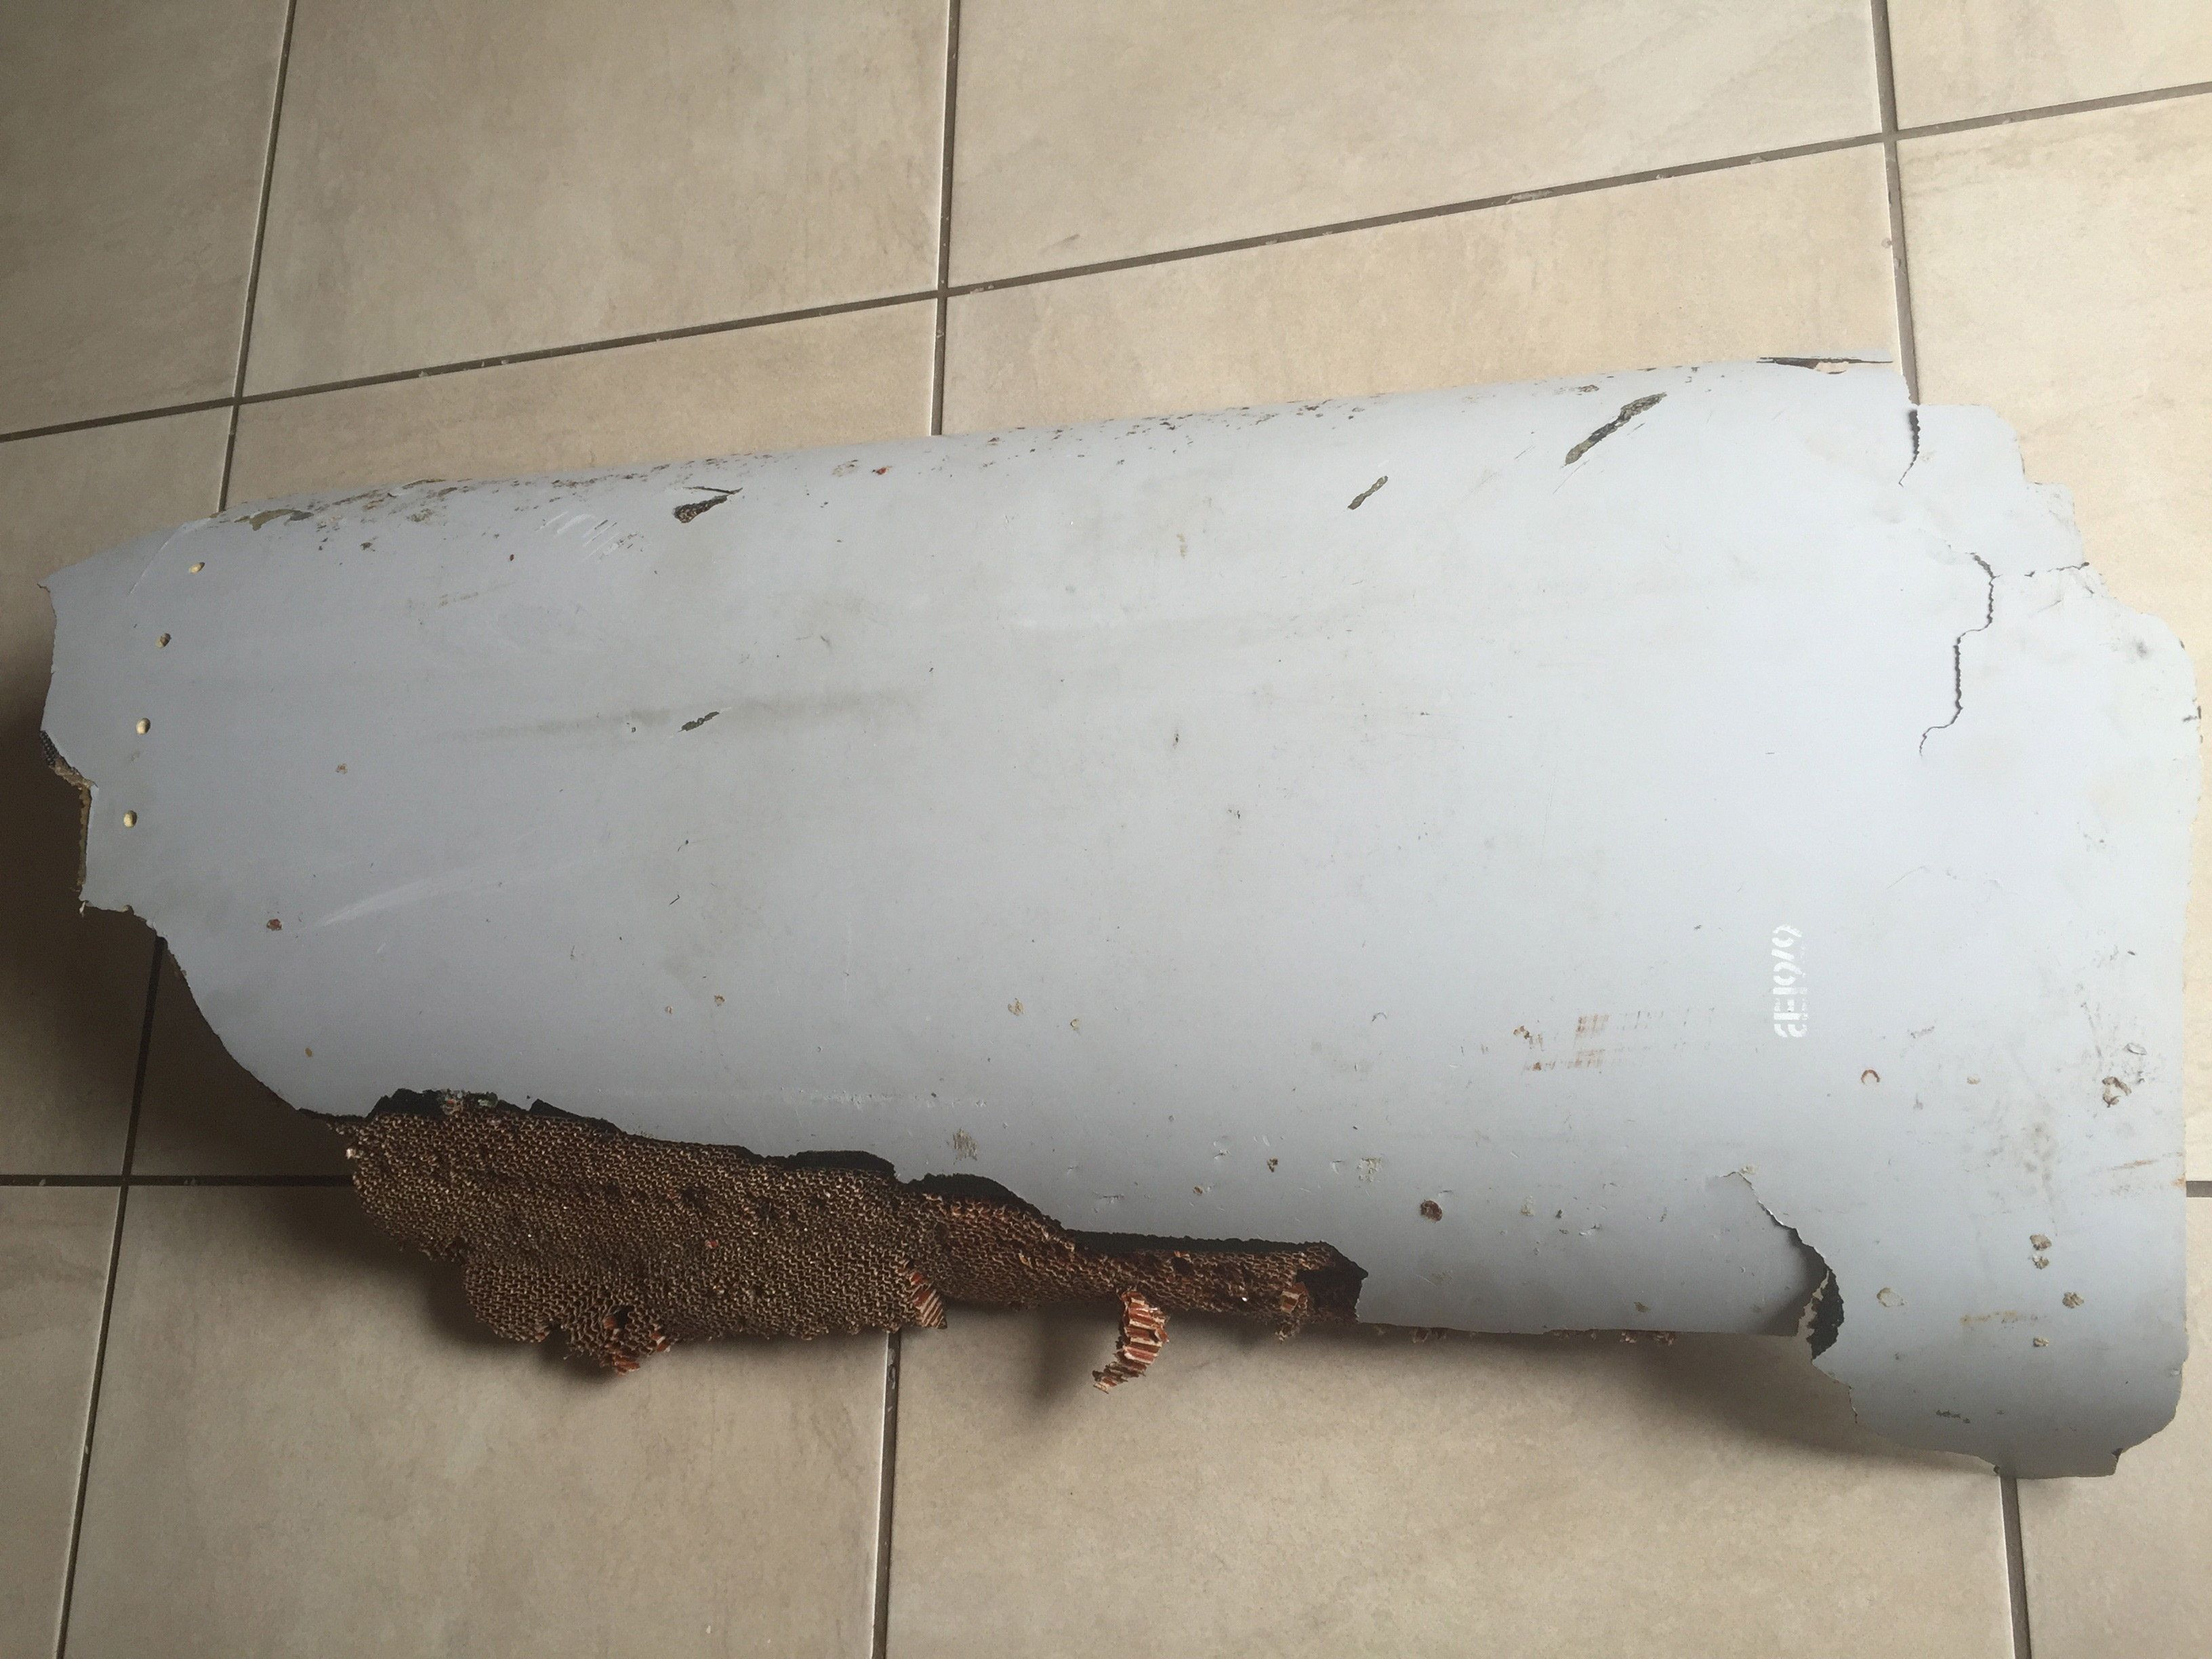 A piece of debris found by a South African family off the Mozambique coast in December 2015, which authorities will examine to see if it is from missing Malaysia Airlines flight MH370, is pictured in this handout photo released to Reuters March 11, 2016. REUTERS/Candace Lotter/Handout via Reuters      ATTENTION EDITORS - THIS PICTURE WAS PROVIDED BY A THIRD PARTY. REUTERS IS UNABLE TO INDEPENDENTLY VERIFY THE AUTHENTICITY, CONTENT, LOCATION OR DATE OF THIS IMAGE. FOR EDITORIAL USE ONLY. NOT FOR SALE FOR MARKETING OR ADVERTISING CAMPAIGNS. NO RESALES. NO ARCHIVE. THIS PICTURE IS DISTRIBUTED EXACTLY AS RECEIVED BY REUTERS, AS A SERVICE TO CLIENTS. MUST ON SCREEN COURTESY CANDACE LOTTER. MANDATORY CREDIT      TPX IMAGES OF THE DAY - RTSACE8